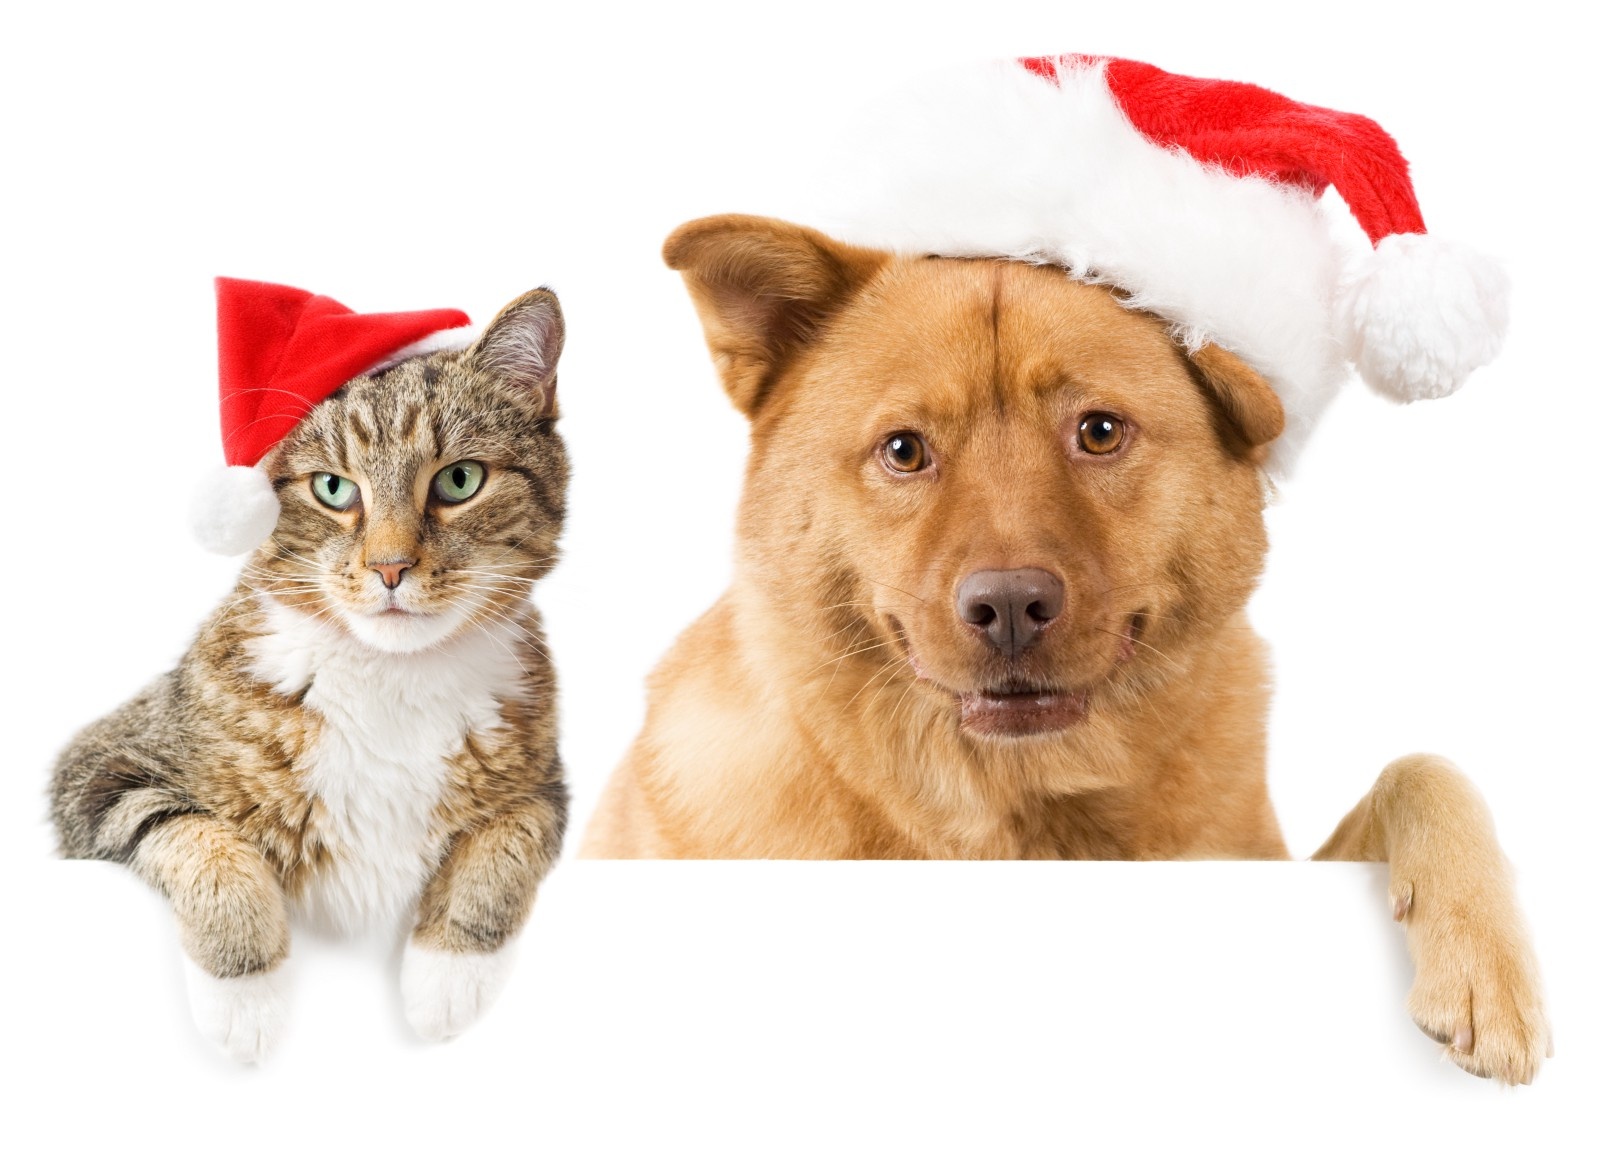 How to get your pets in the holiday spirit vet supply source medium how to get your pets in the holiday spirit m4hsunfo